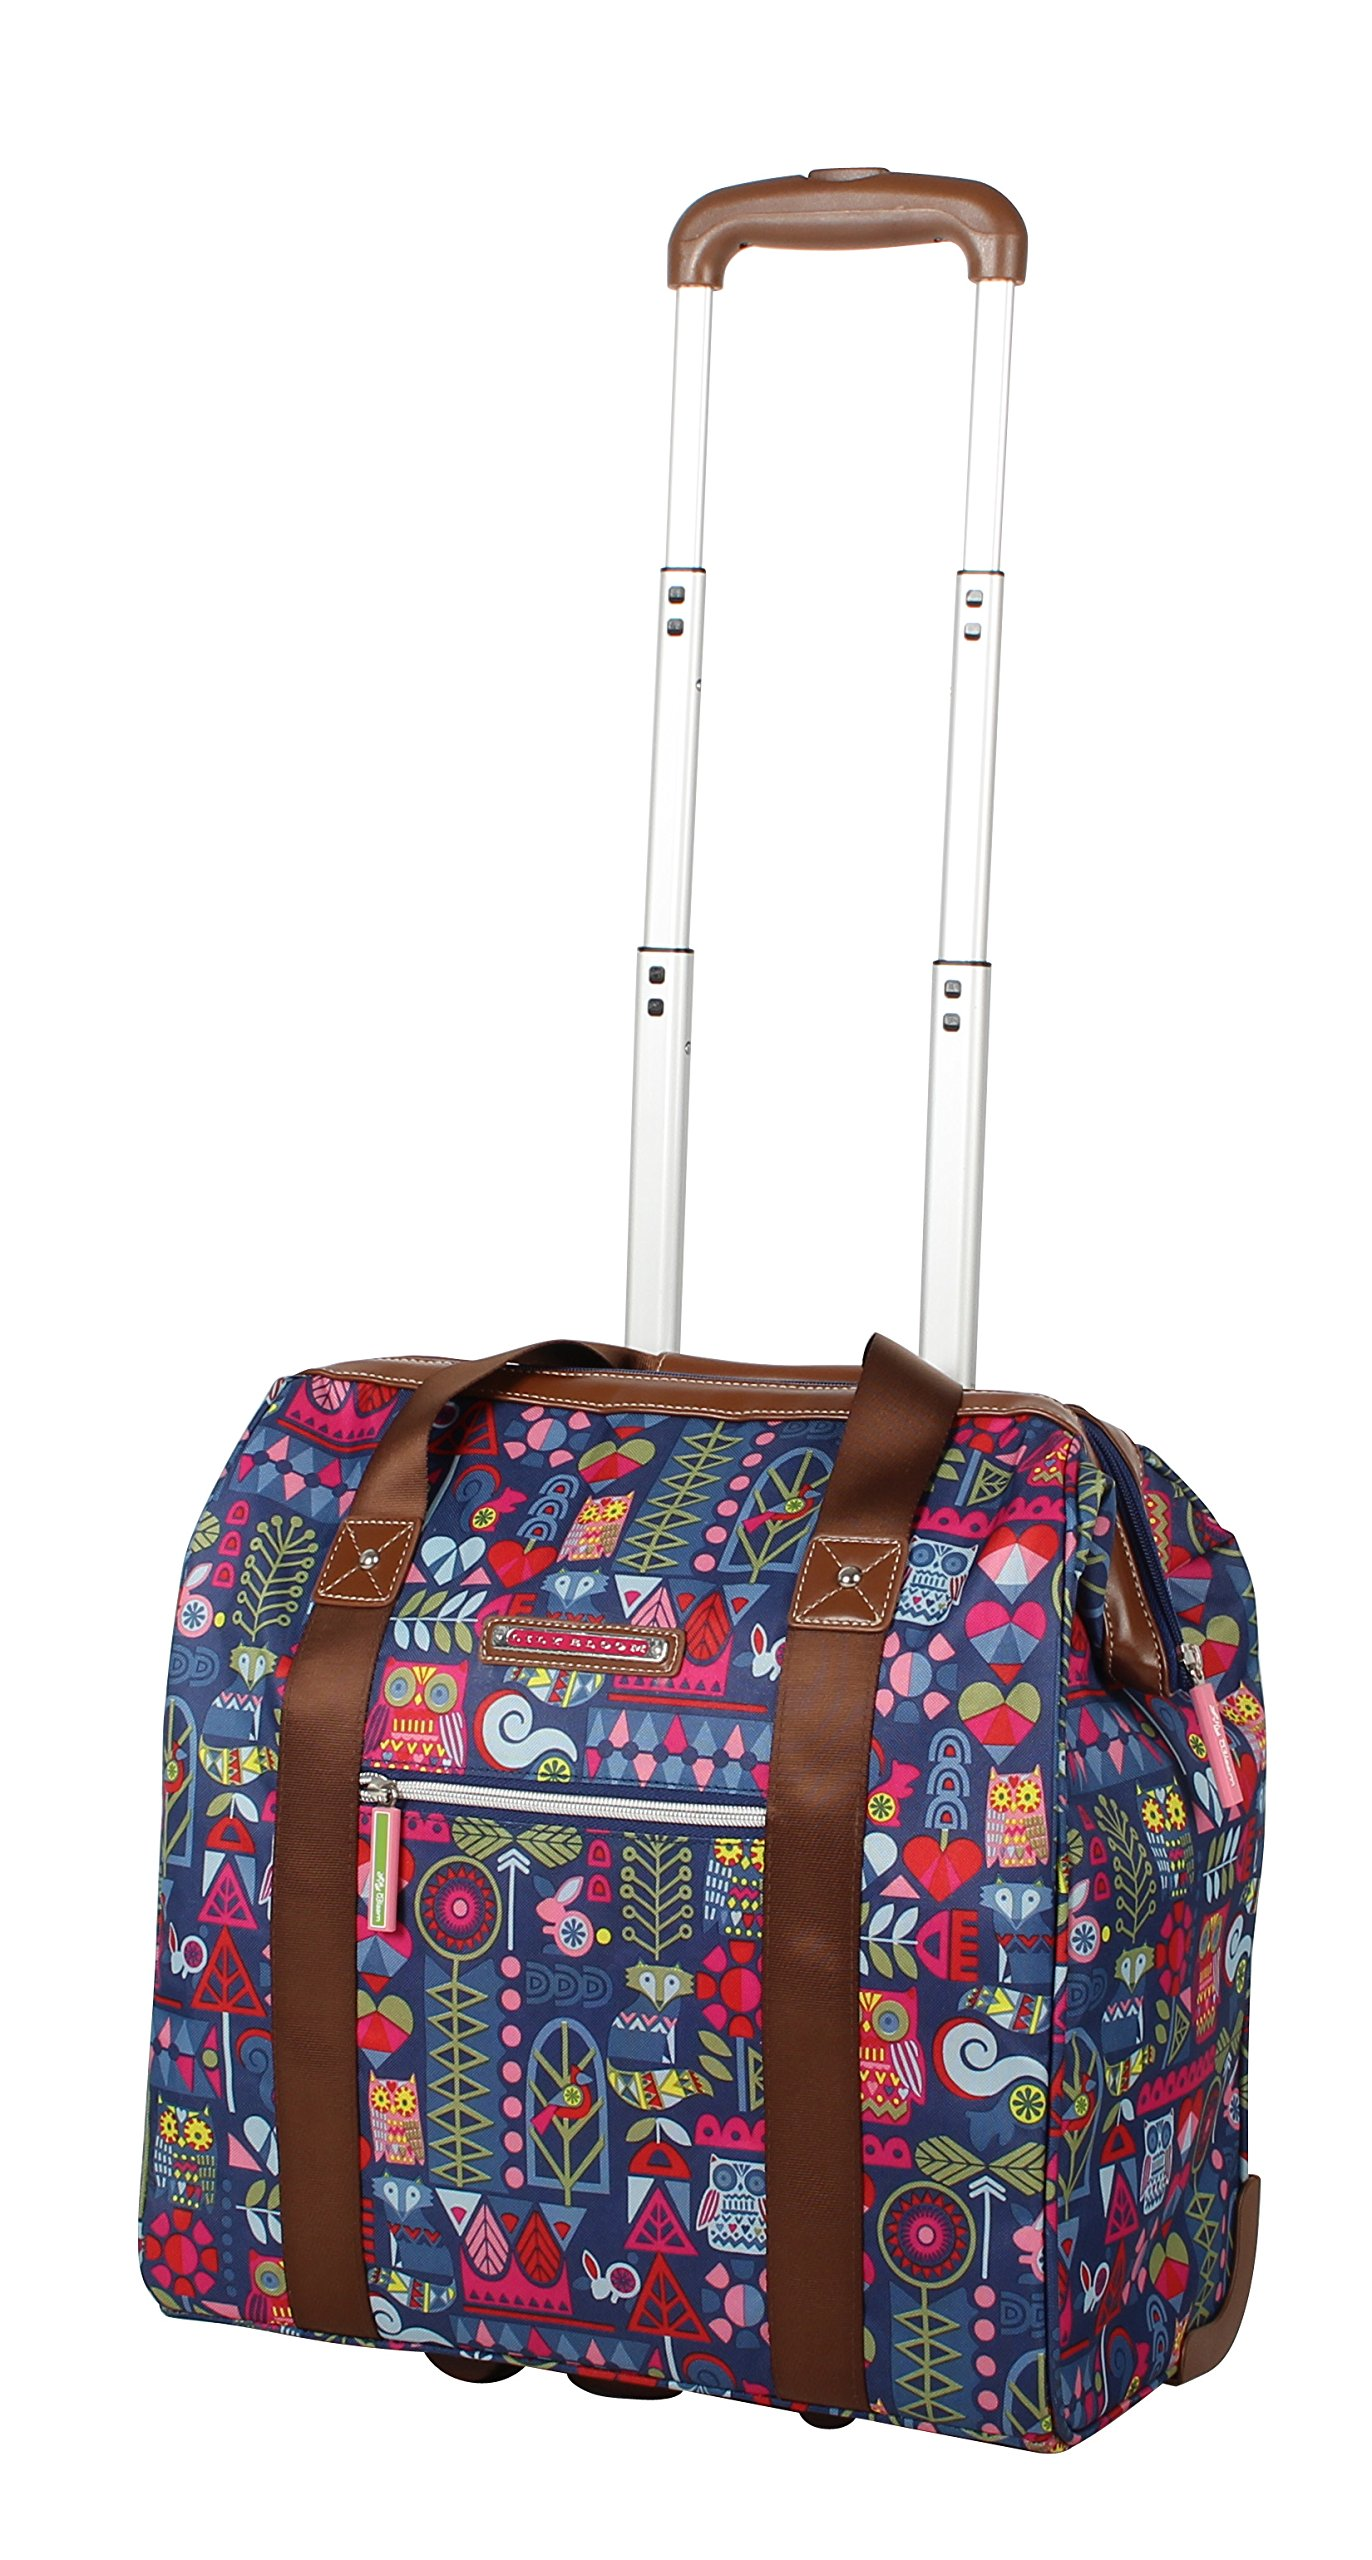 Lily Bloom Luggage 3 Piece Softside Spinner Suitcase Set Collection (Geo Critter) by Lily Bloom (Image #5)